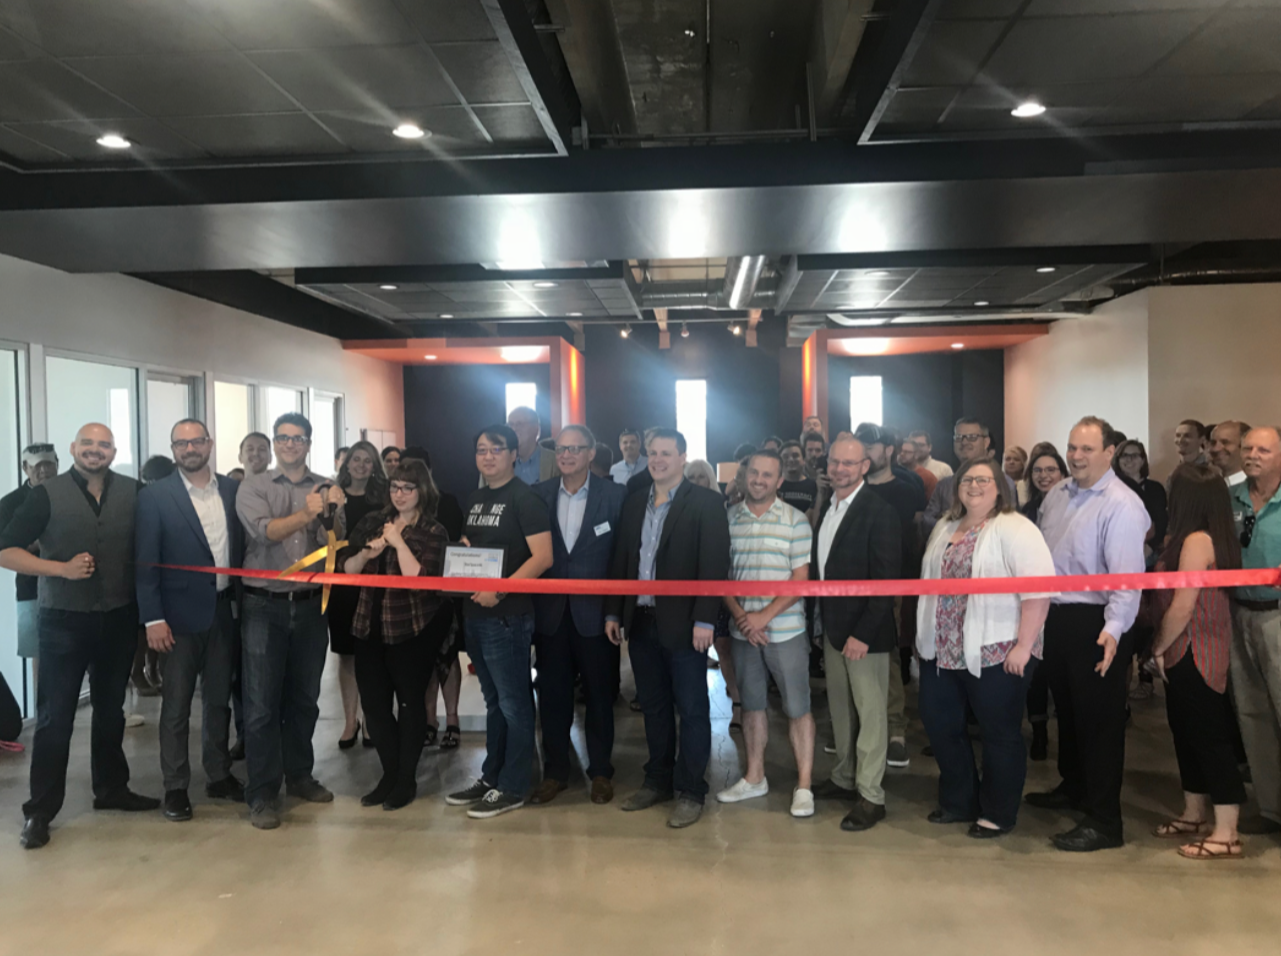 2nd-floor-ribbon-cutting.png